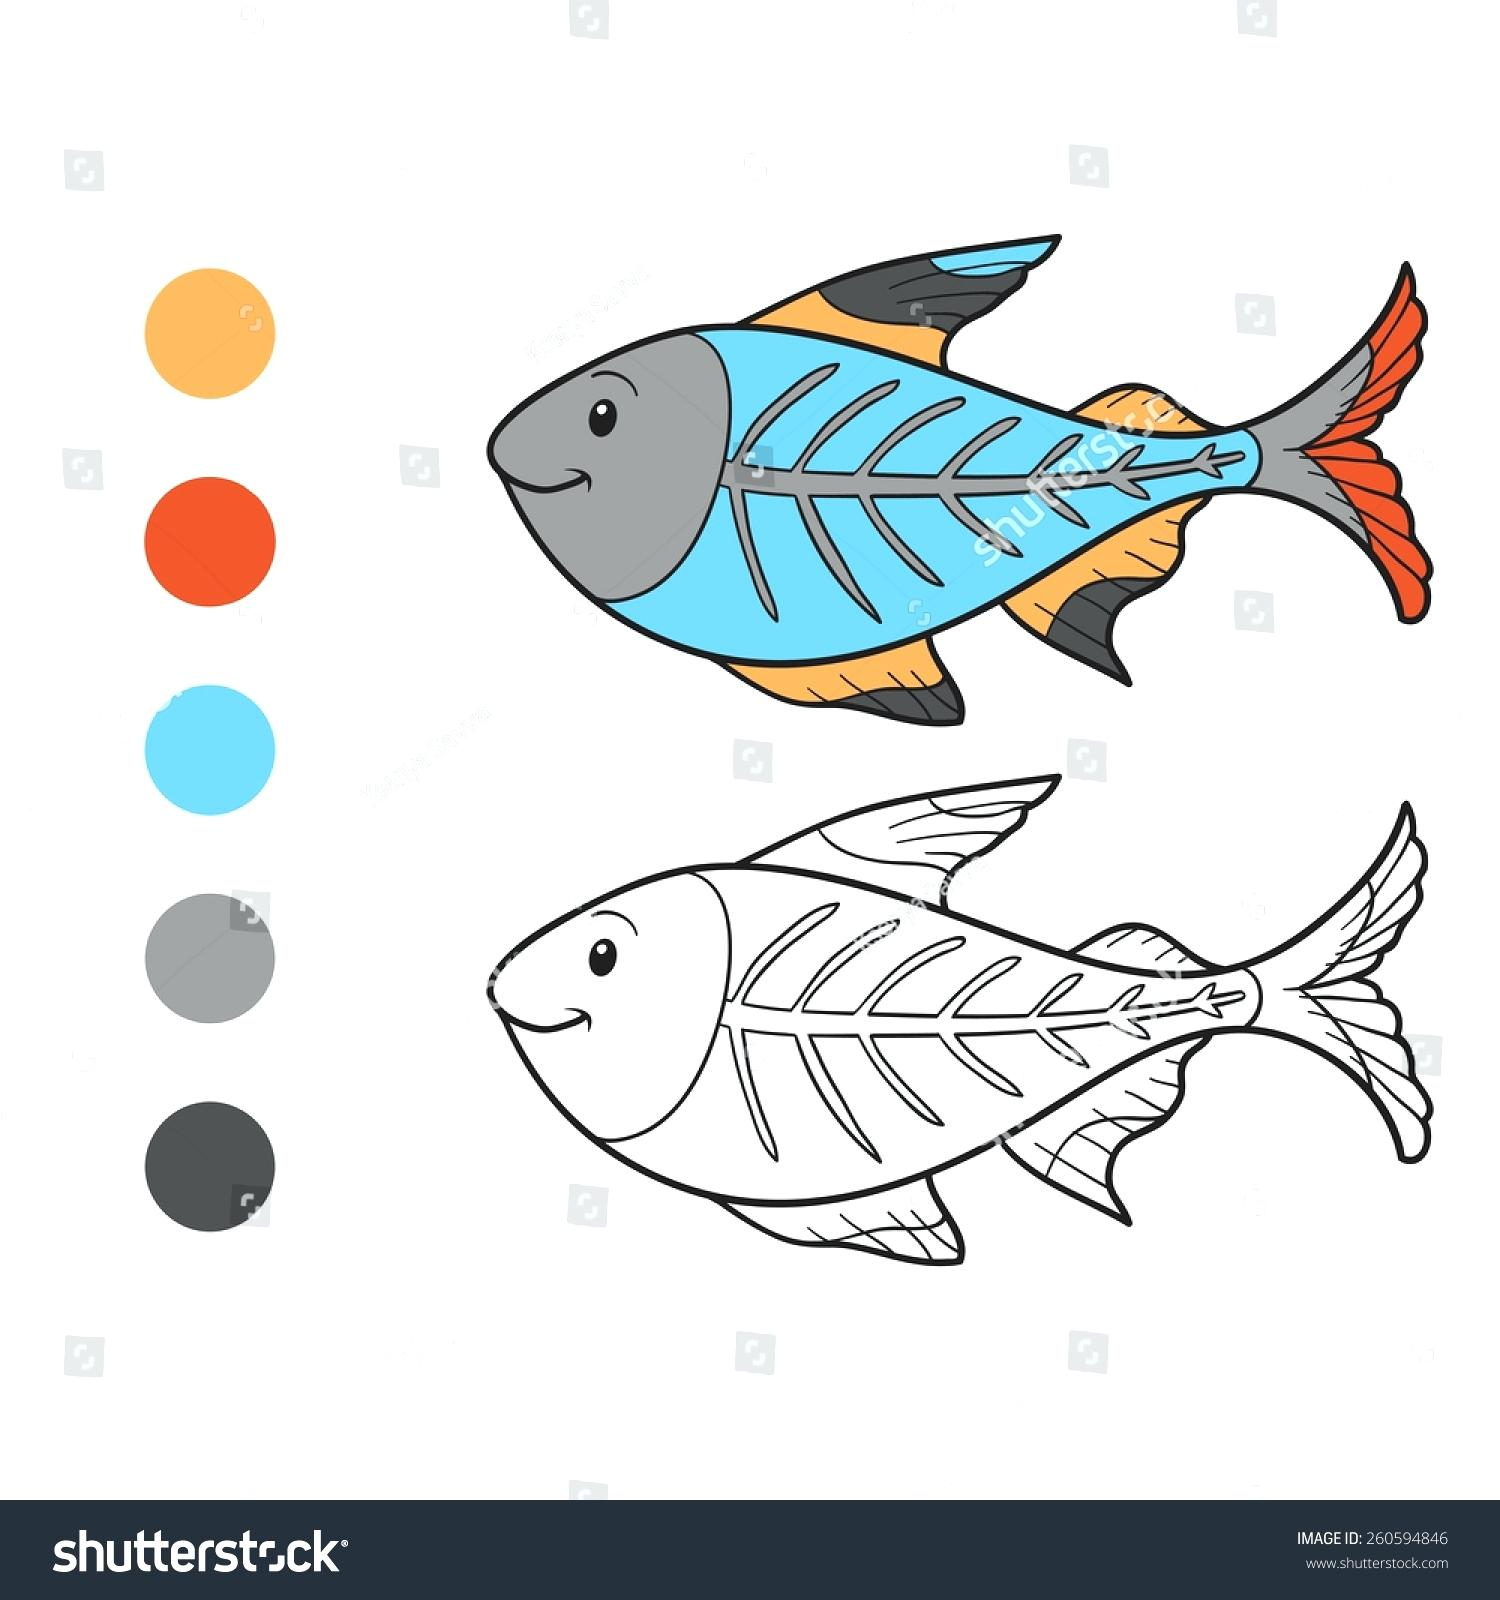 1500x1600 Coloring X Ray Fish Coloring Page Image For Your Line Drawings